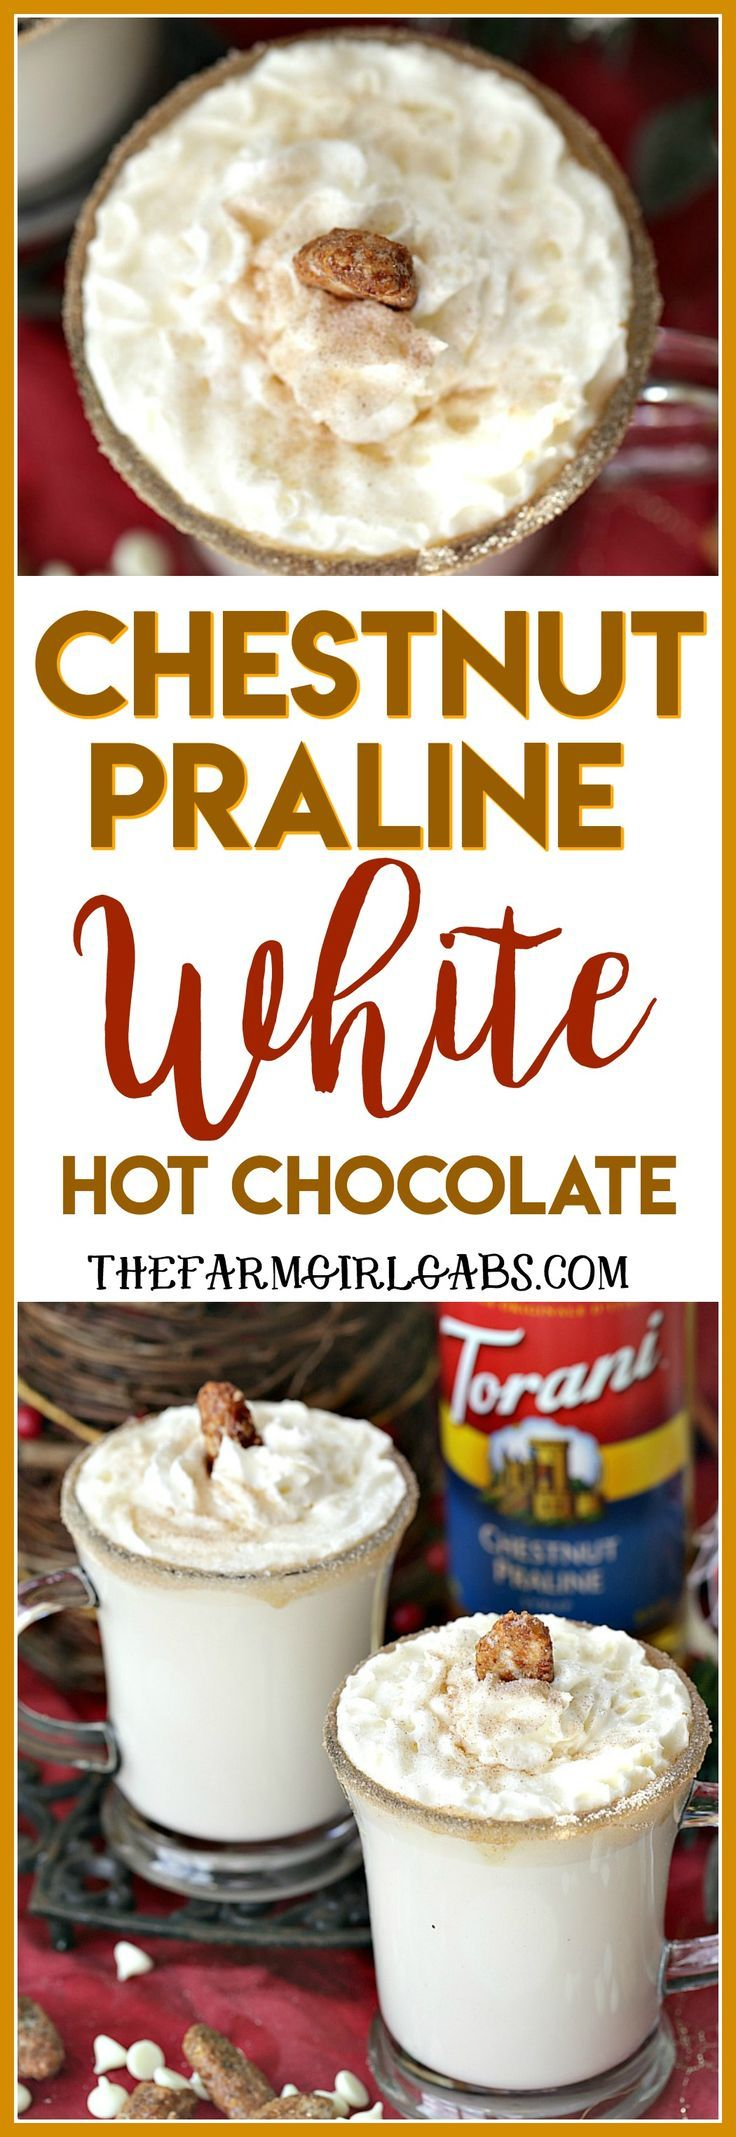 Warm up with a mug of Chestnut Praline White Hot Chocolate. Save money by making your own drink recipes at home using Torani Syrups! #Ad #HotChocolate #AToraniHoliday #DrinkRecipe #Christmas @ToraniFlavor